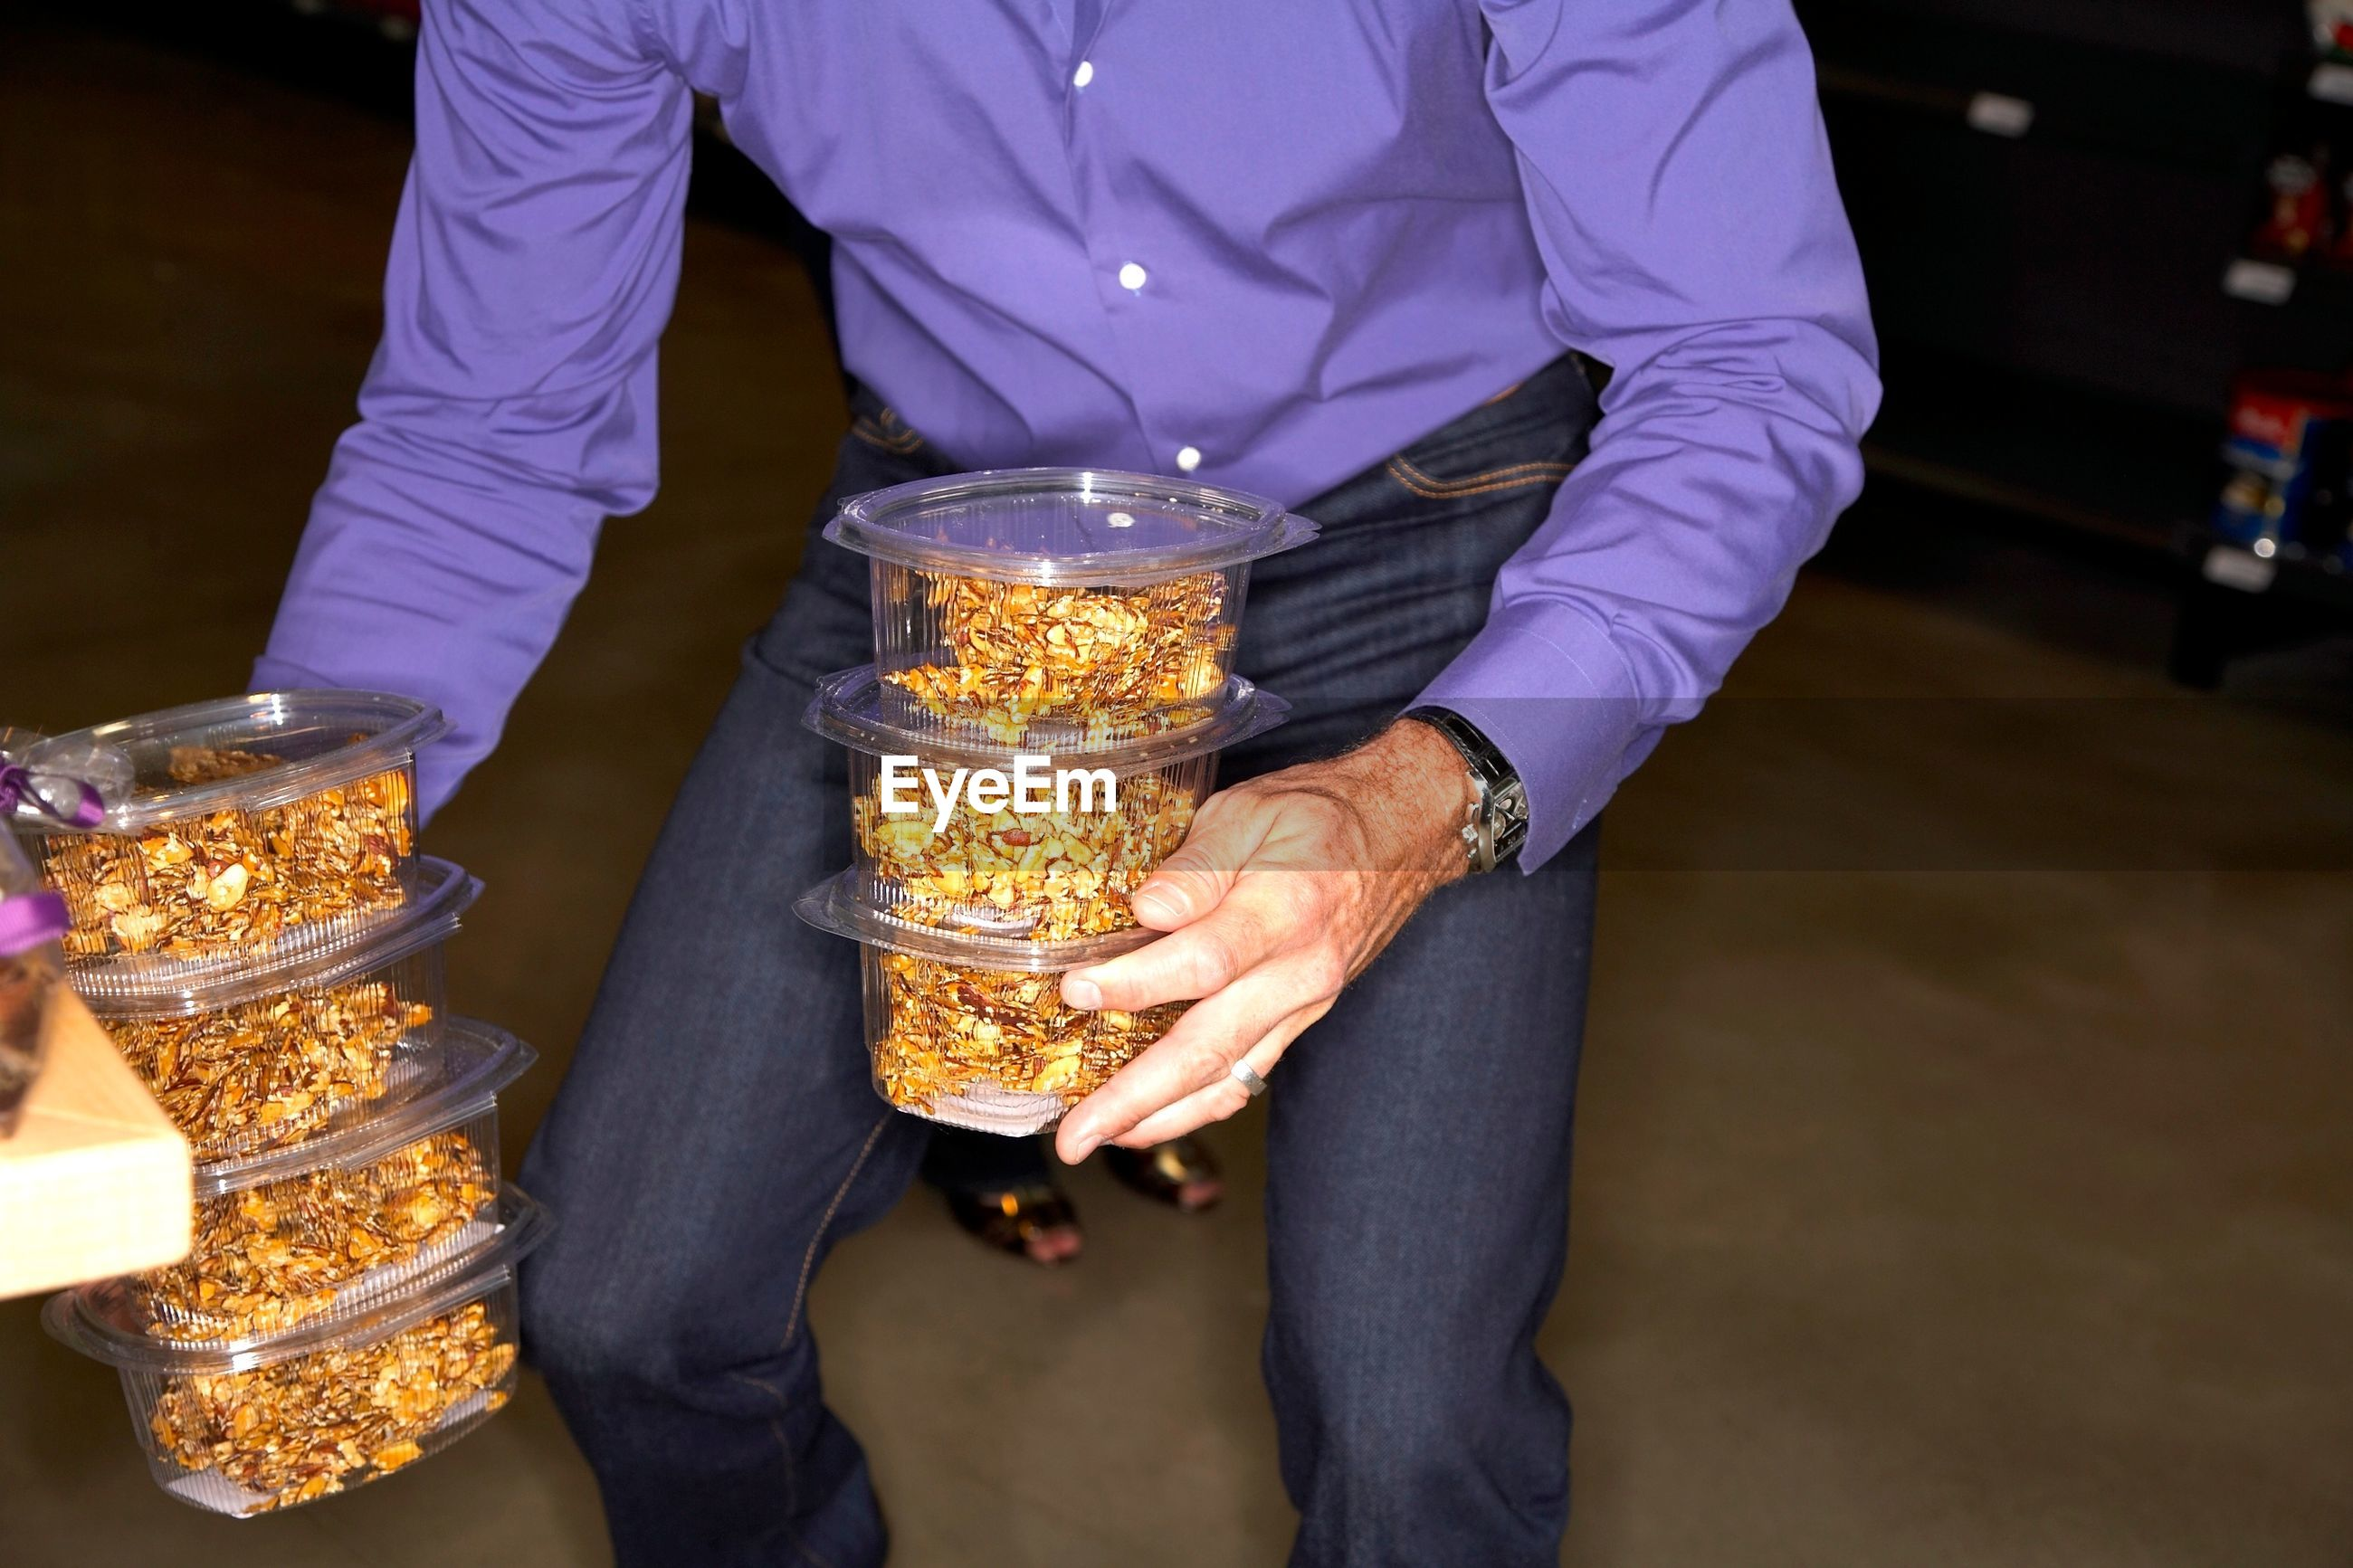 Midsection of man holding food baskets at night